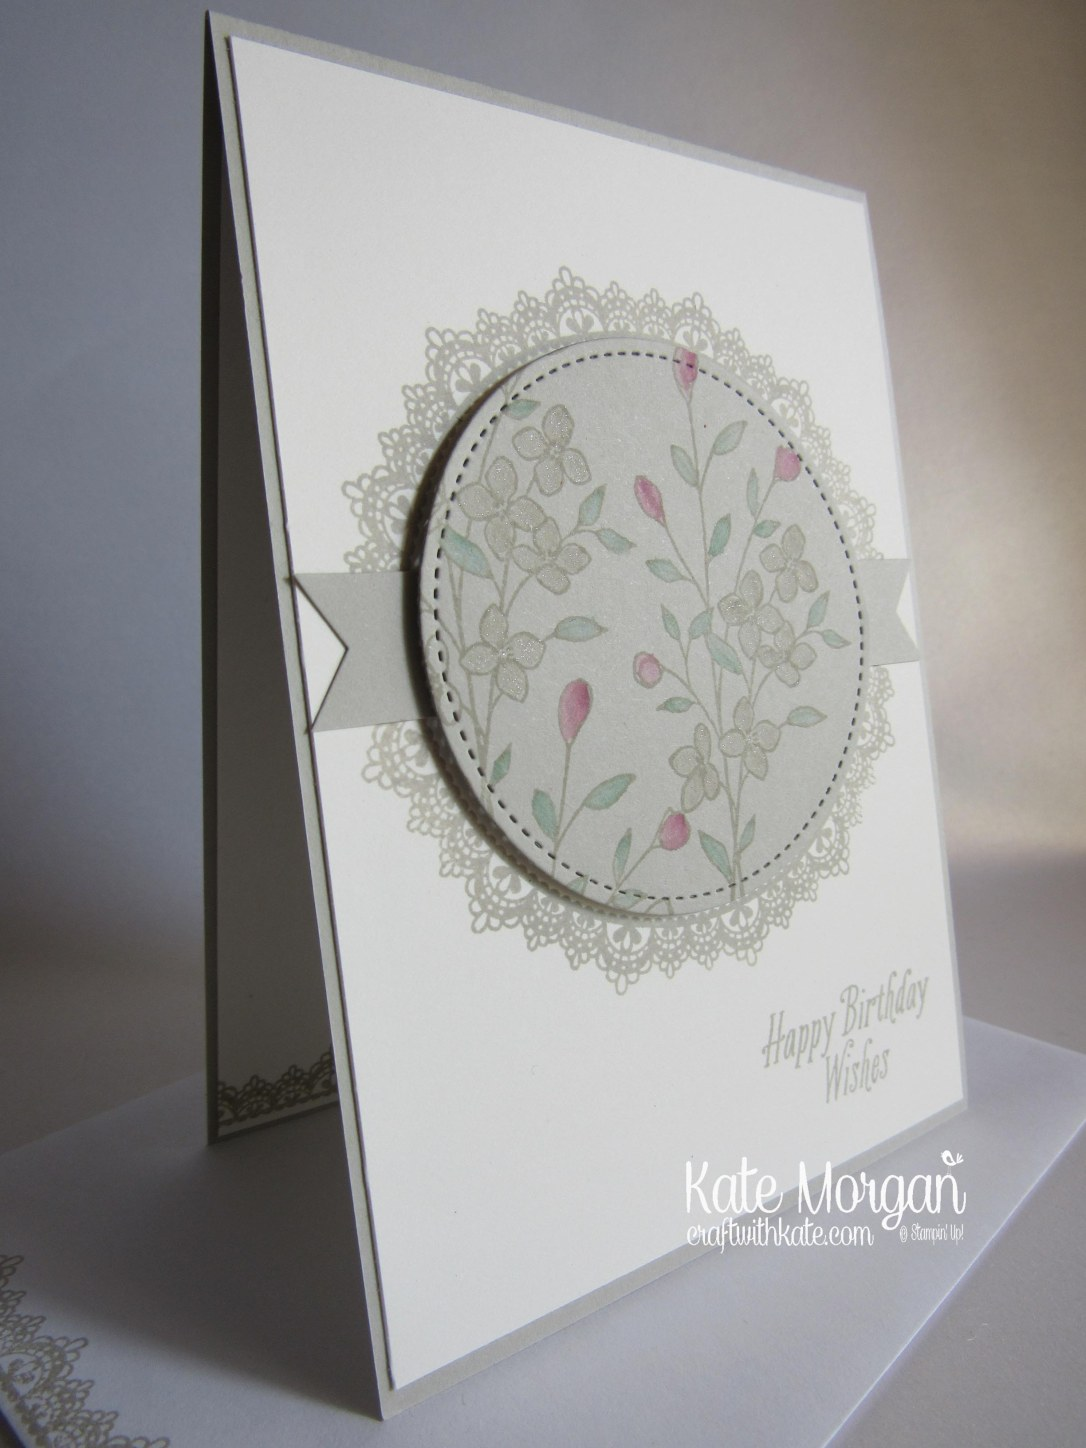 feminine-lacy-card-using-stampin-ups-delicate-details-touches-of-texture-avant-garden-by-kate-morgan-independent-demonstrator-melbourne-saleabration2017-occasions-2017-side